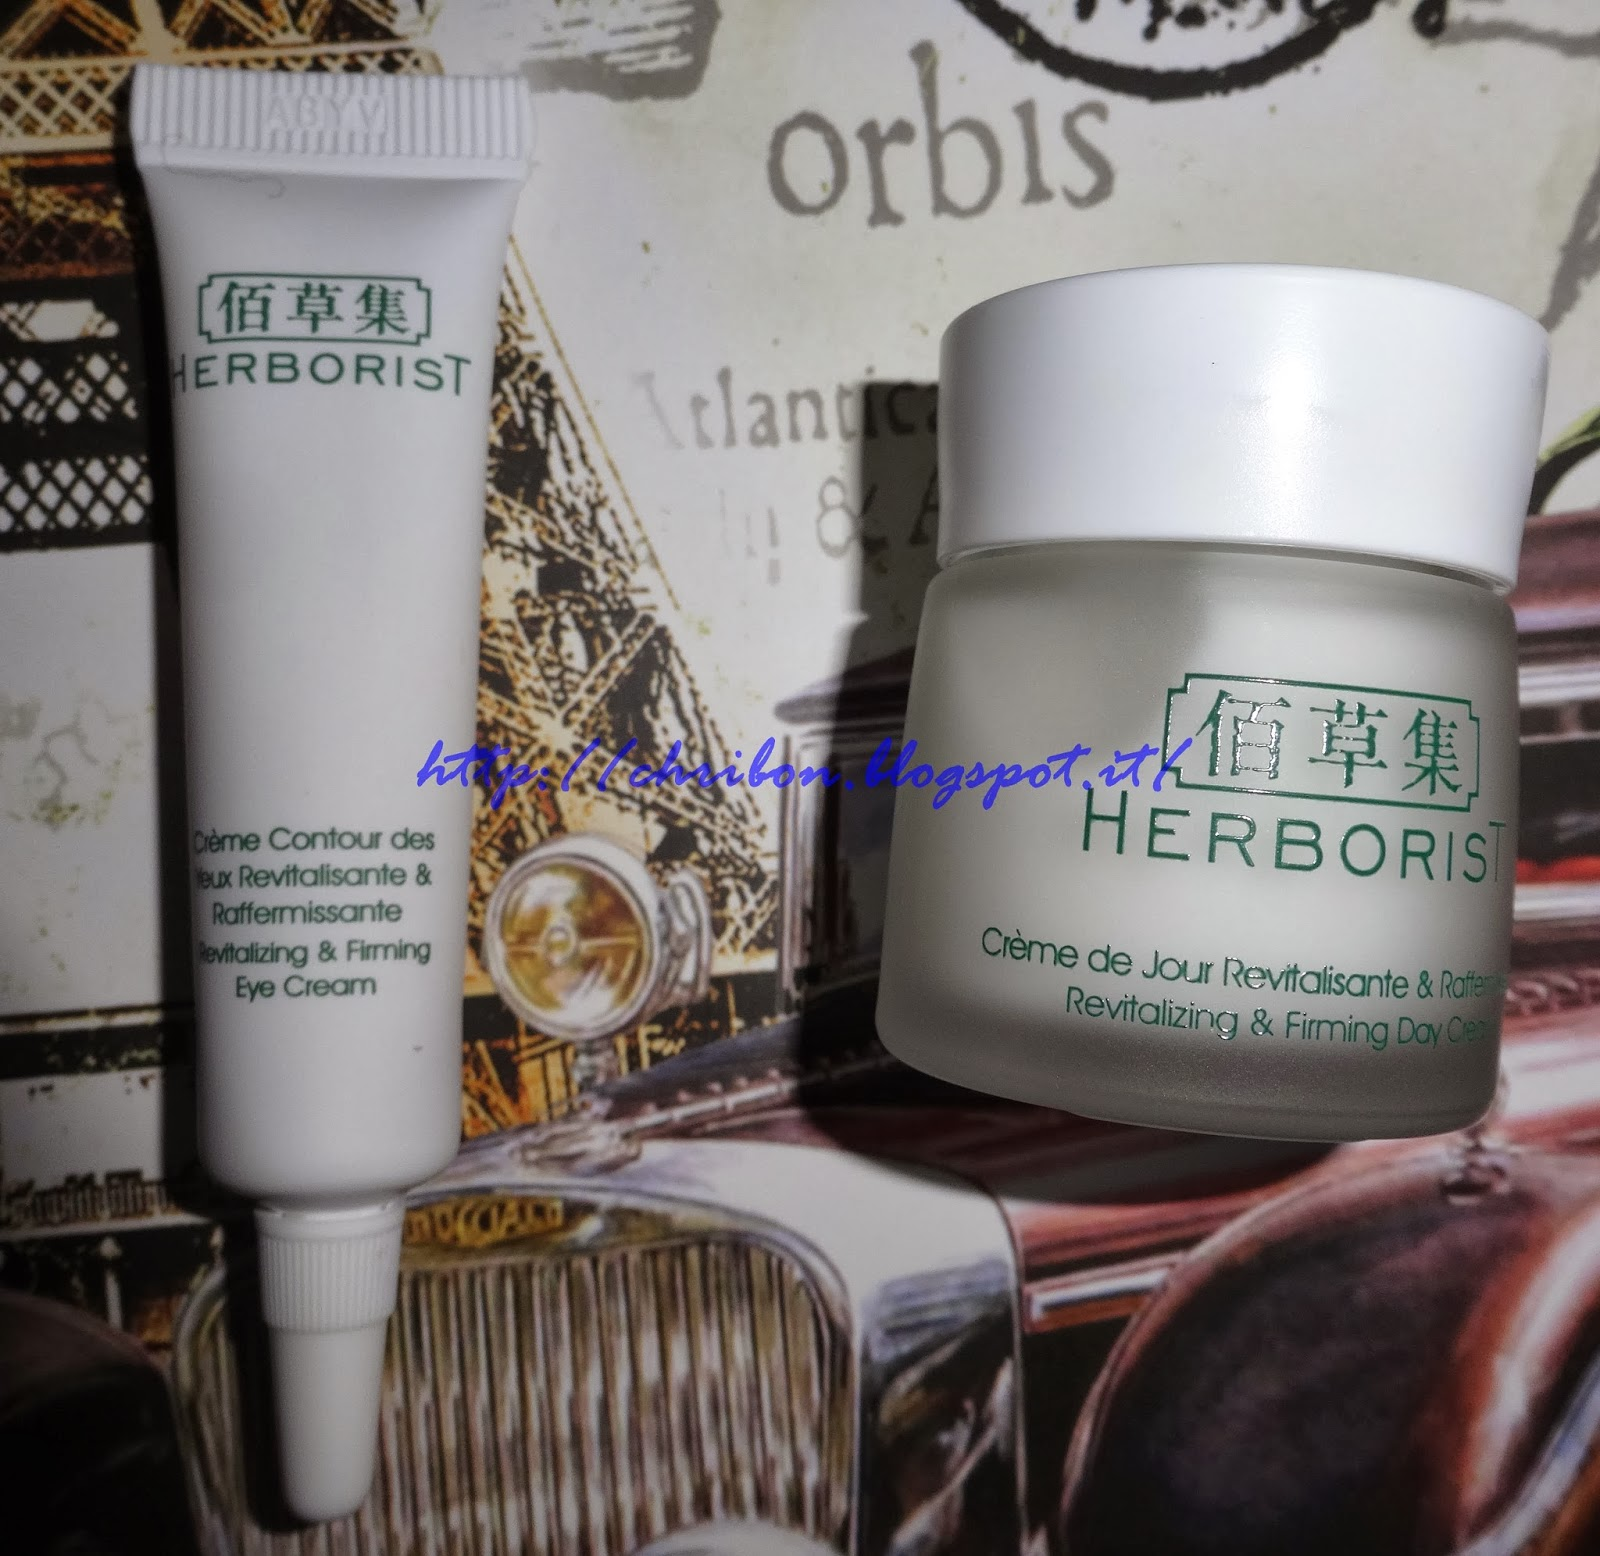 herborist marketing and skin care products China cosmetics market report, 2014-2017 published in feb 2015 available for us $ 2400 of which skin care products ranked first with a herborist, gf and other.